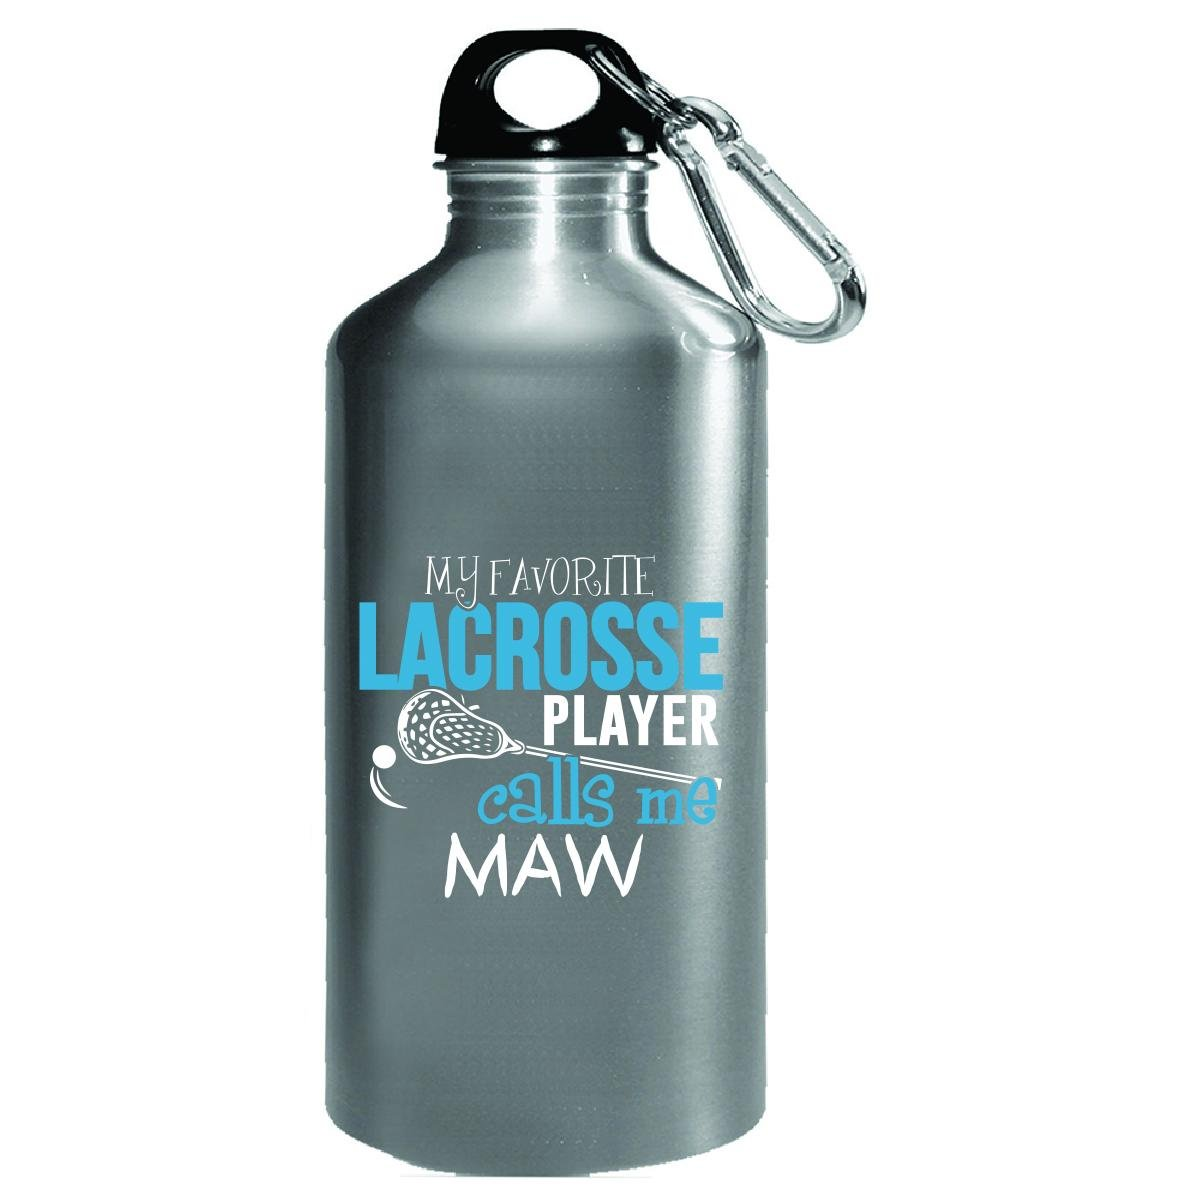 My Favorite Lacrosse Player Calls Me Maw - Water Bottle